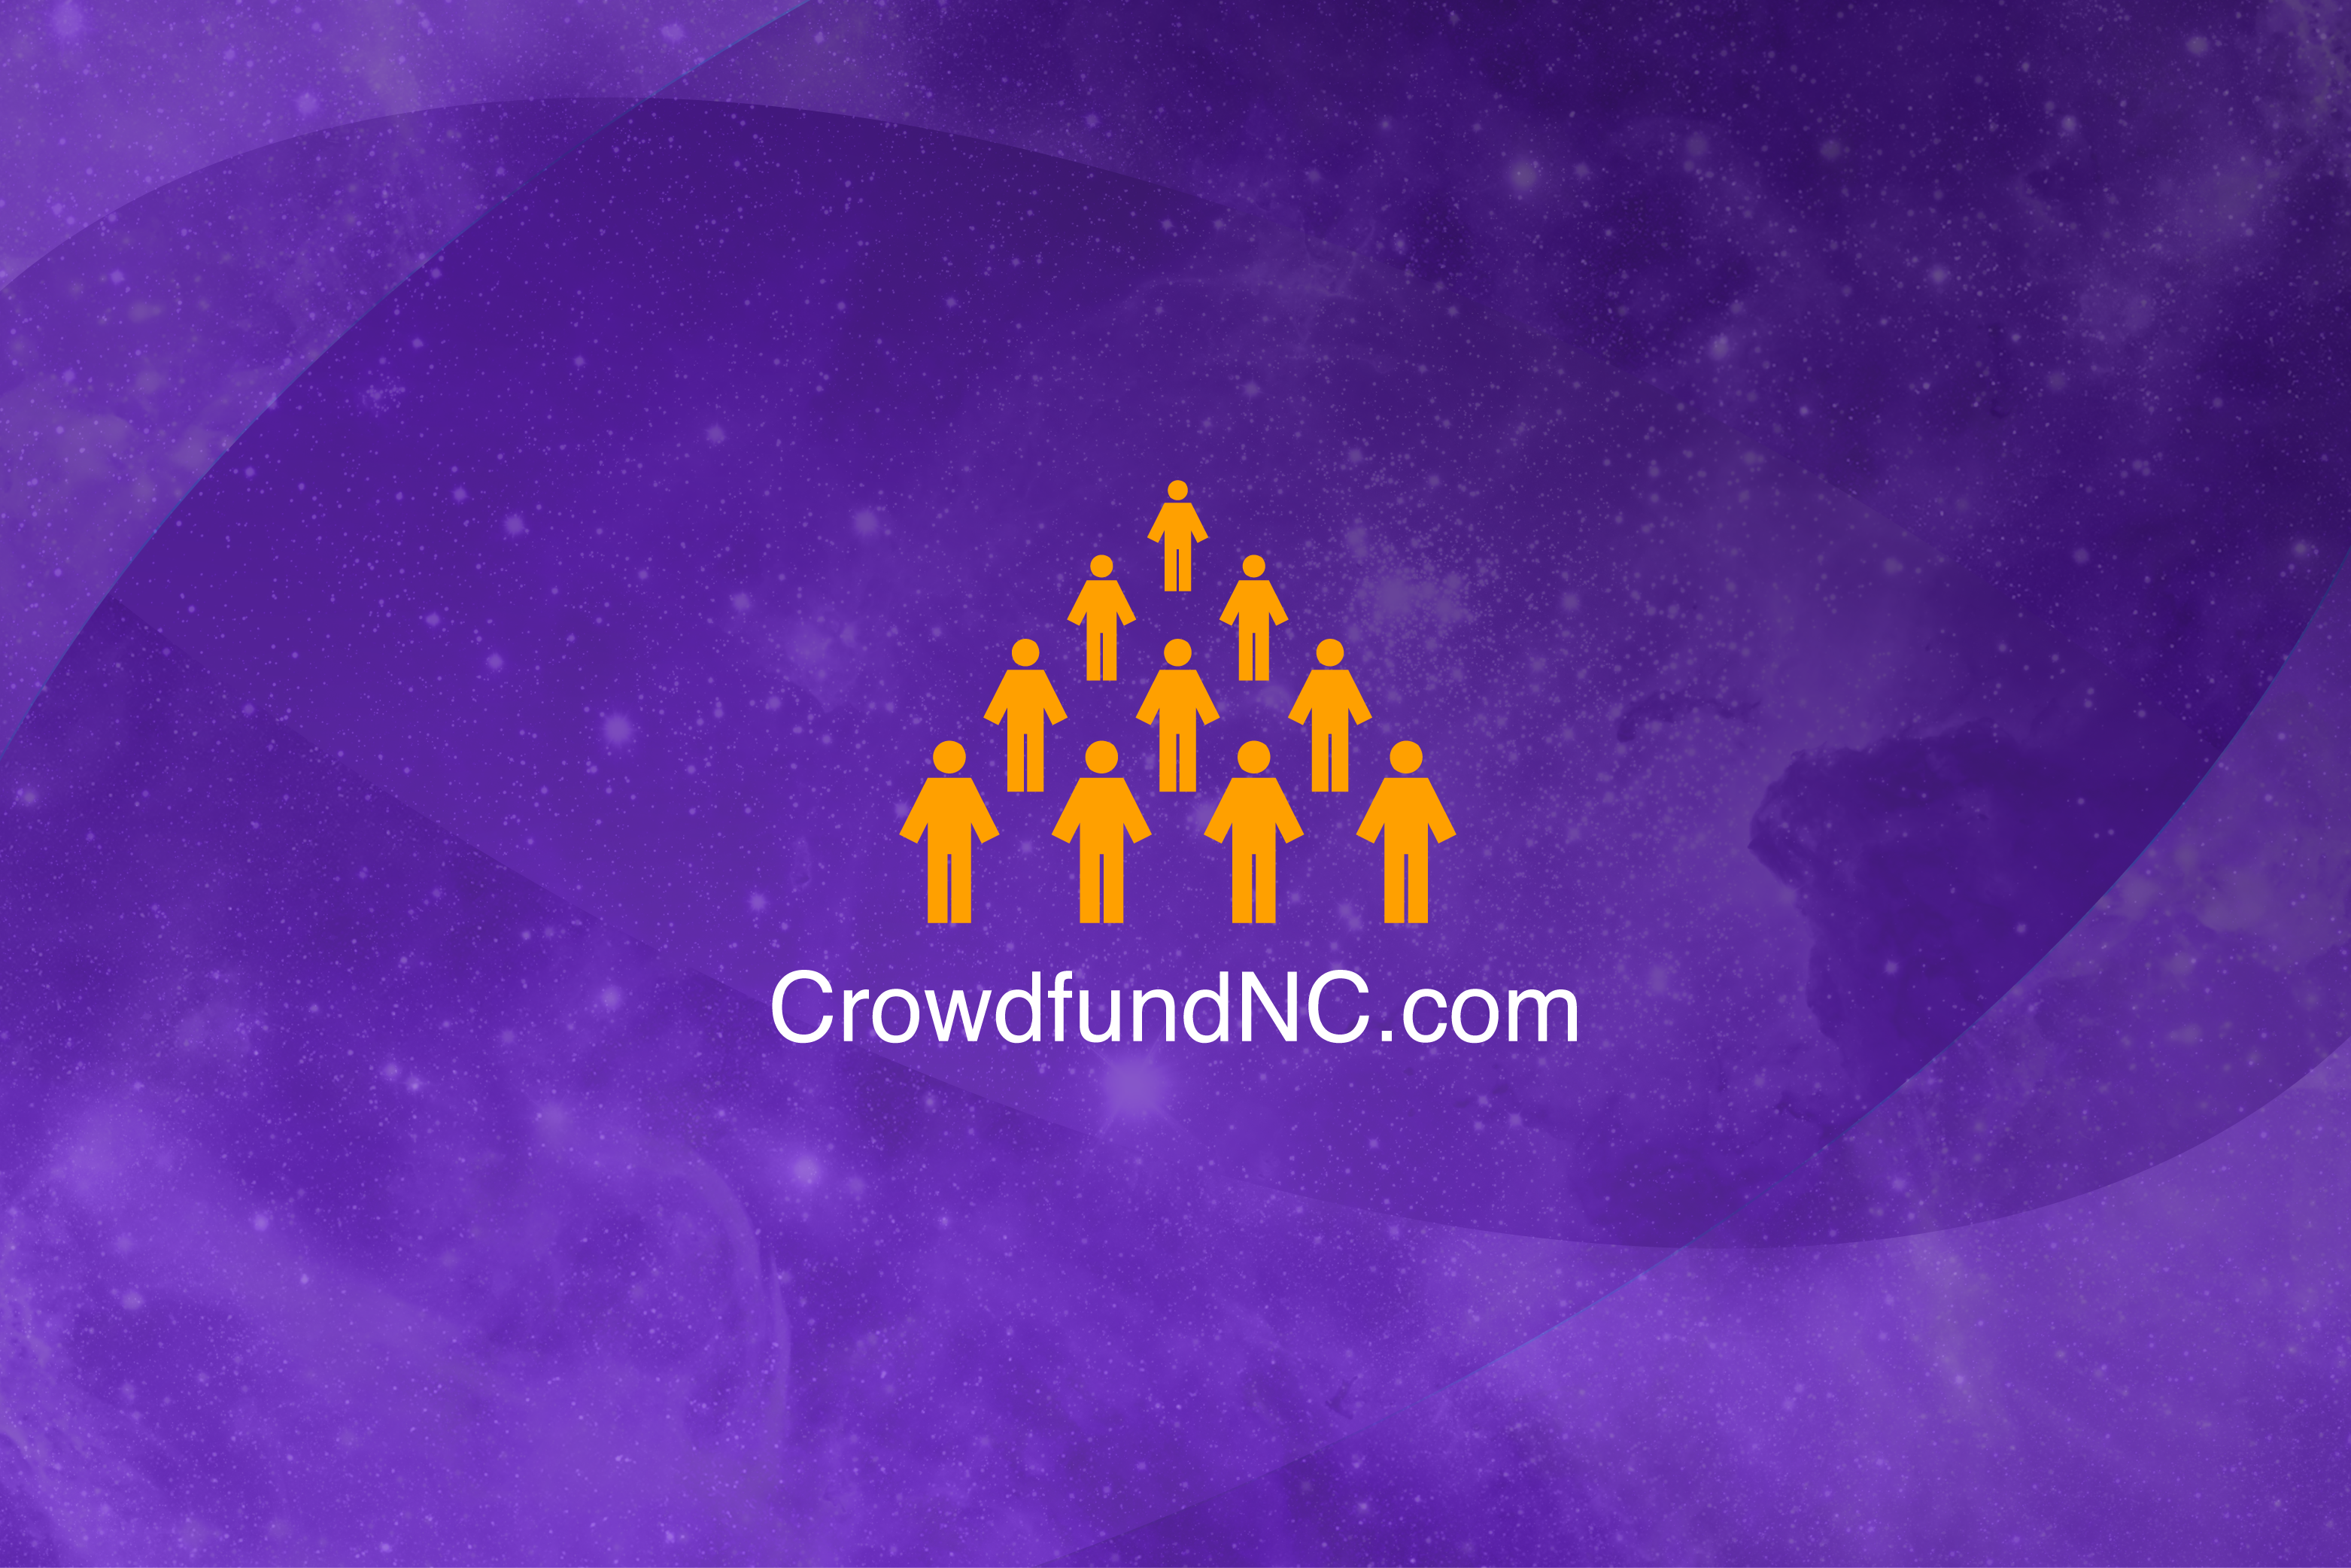 One of The Best Crowdfunding Sites to Raise Fast: CrowdfundNC